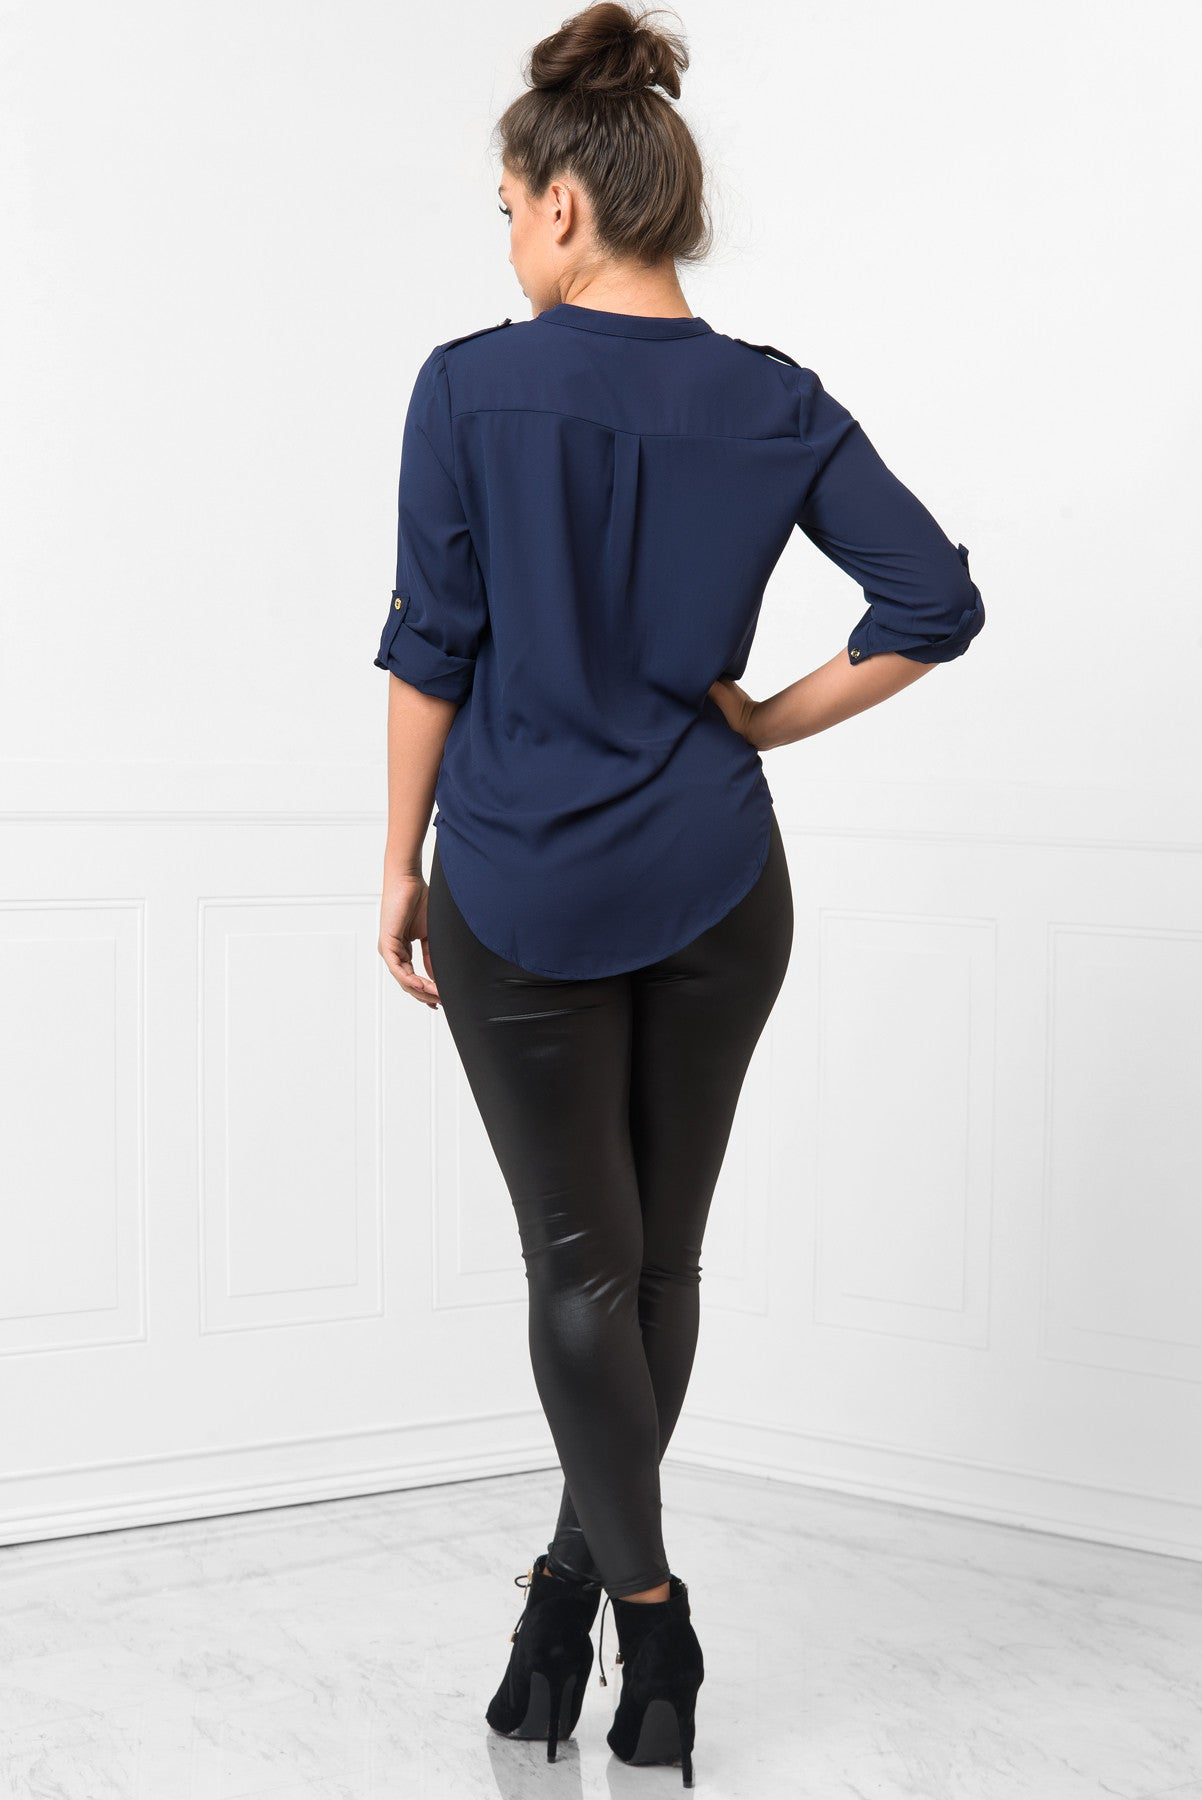 Let's Talk Navy Blouse - Fashion Effect Store  - 3